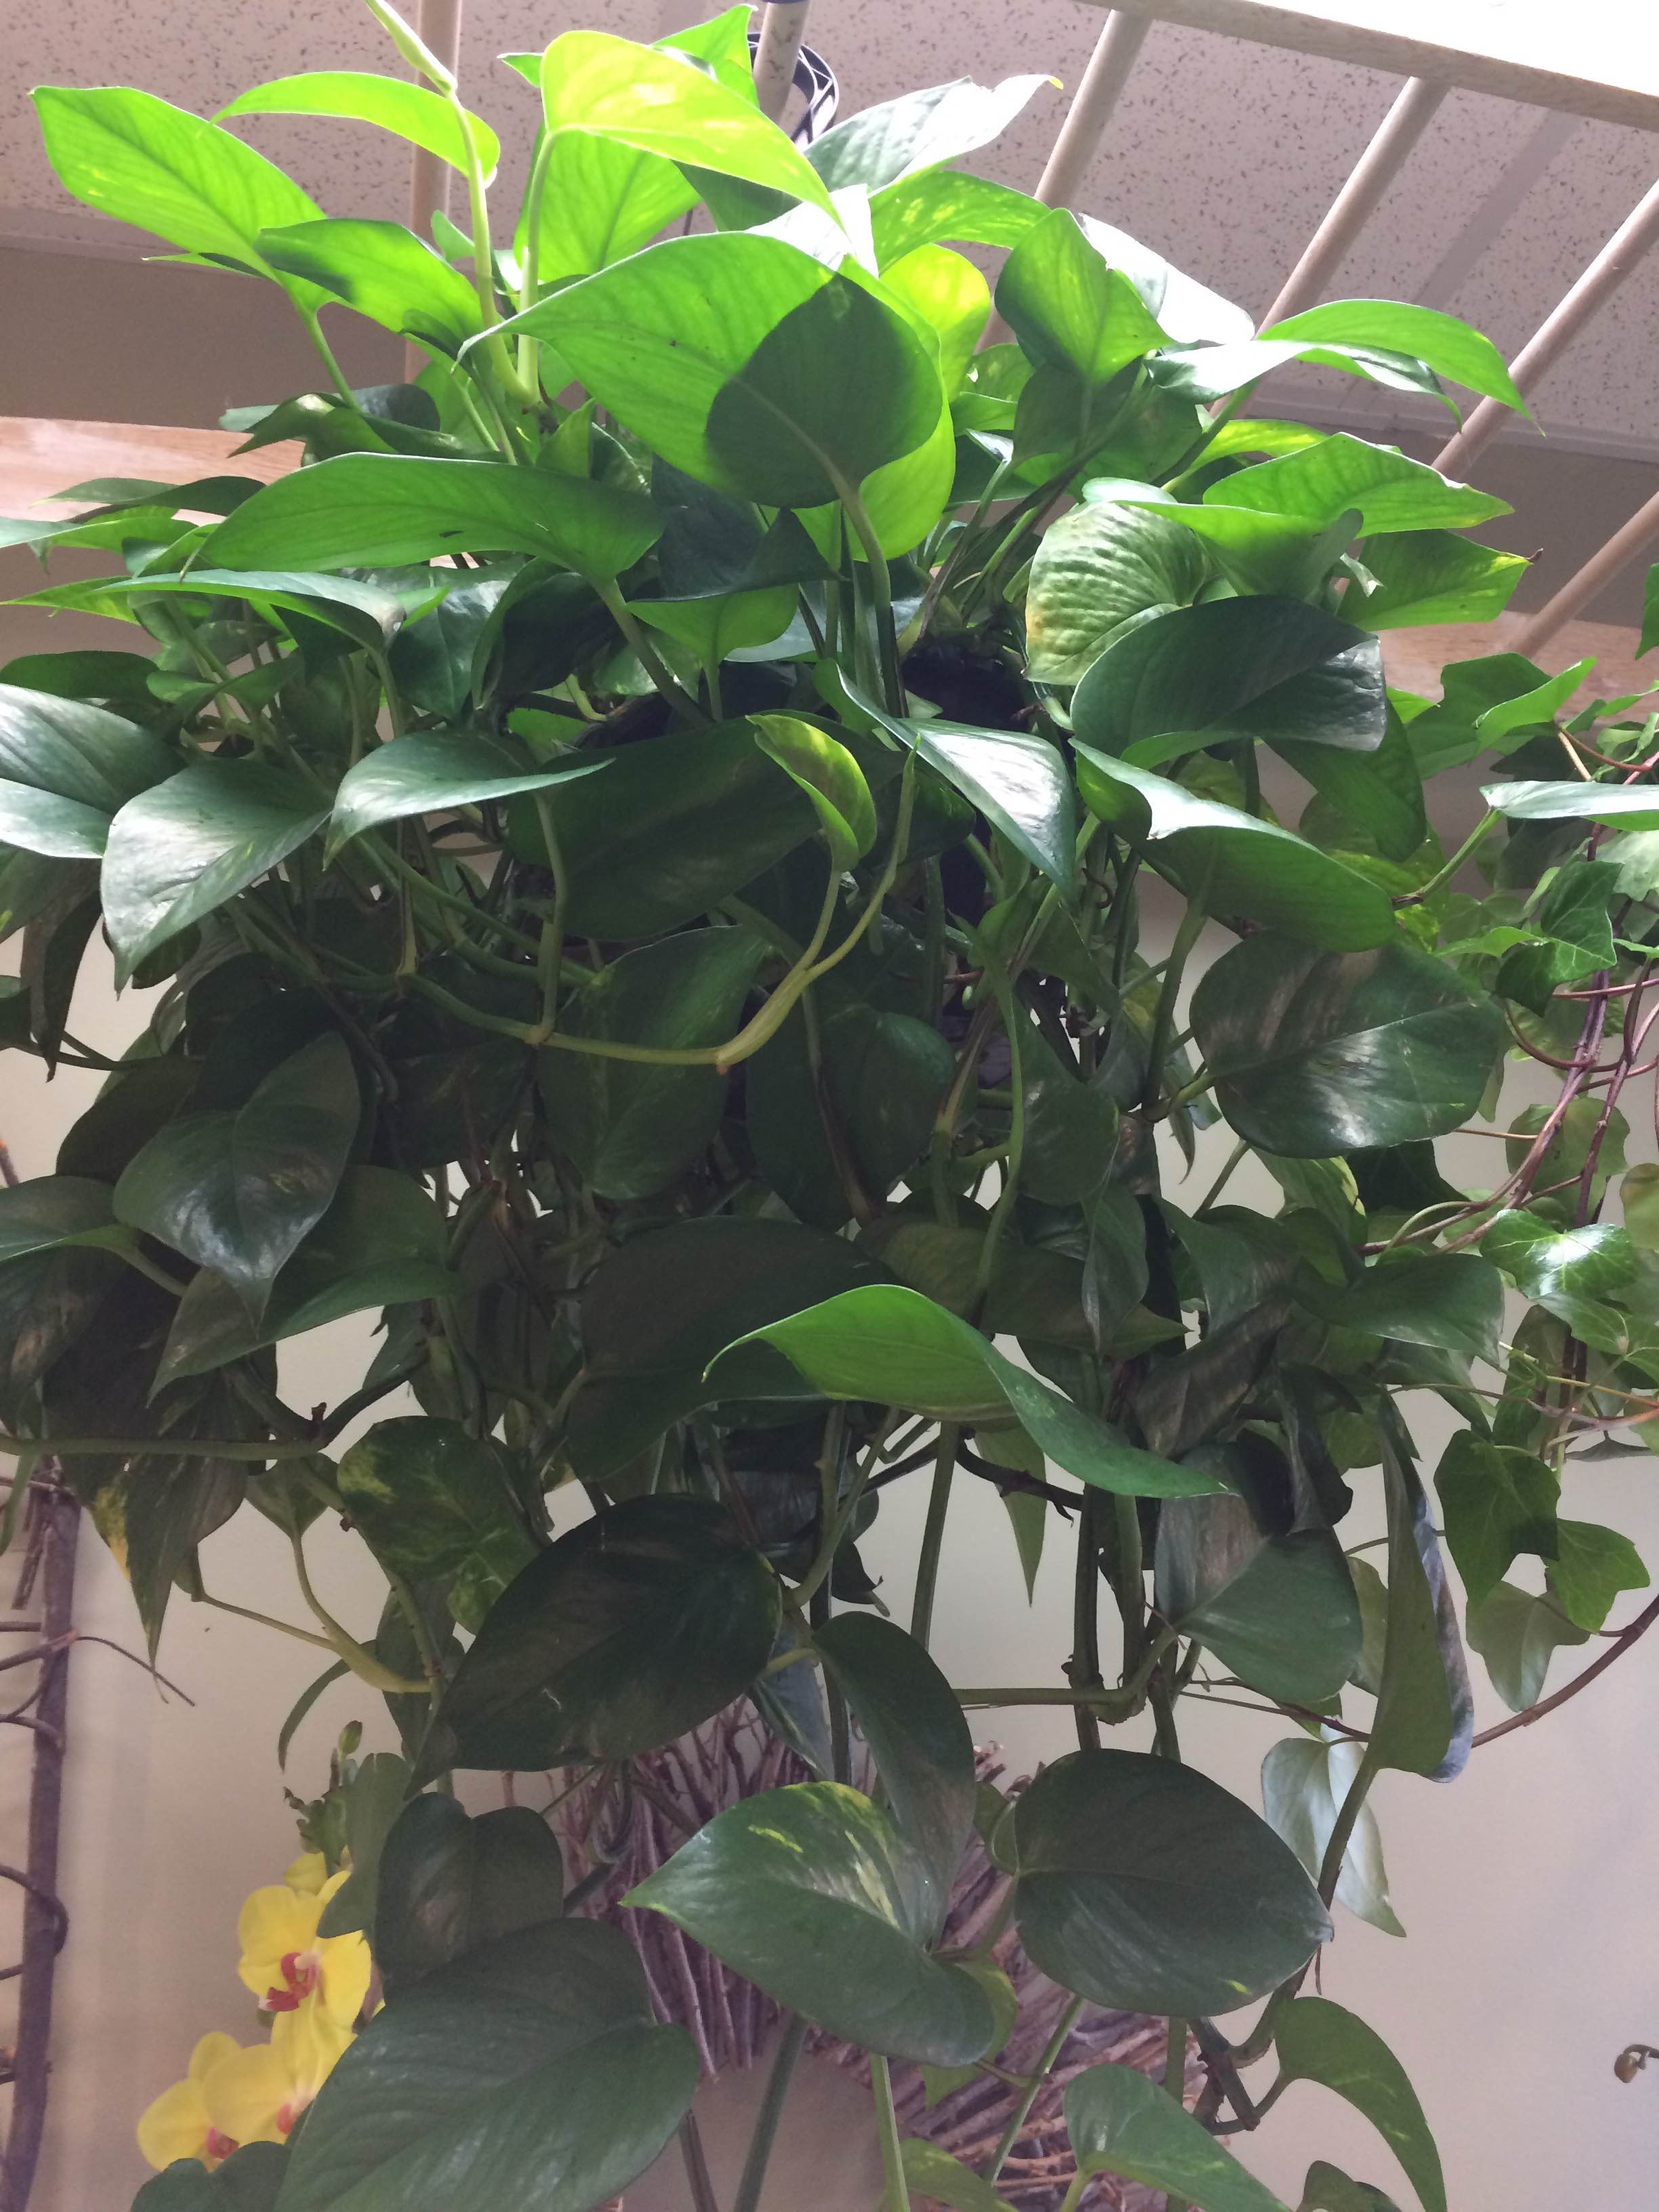 If You Work In An Office You Should Really Have Some Plants Around Since  They Not Only Improve The Air Quality, But They Increase Productivity In  The ...